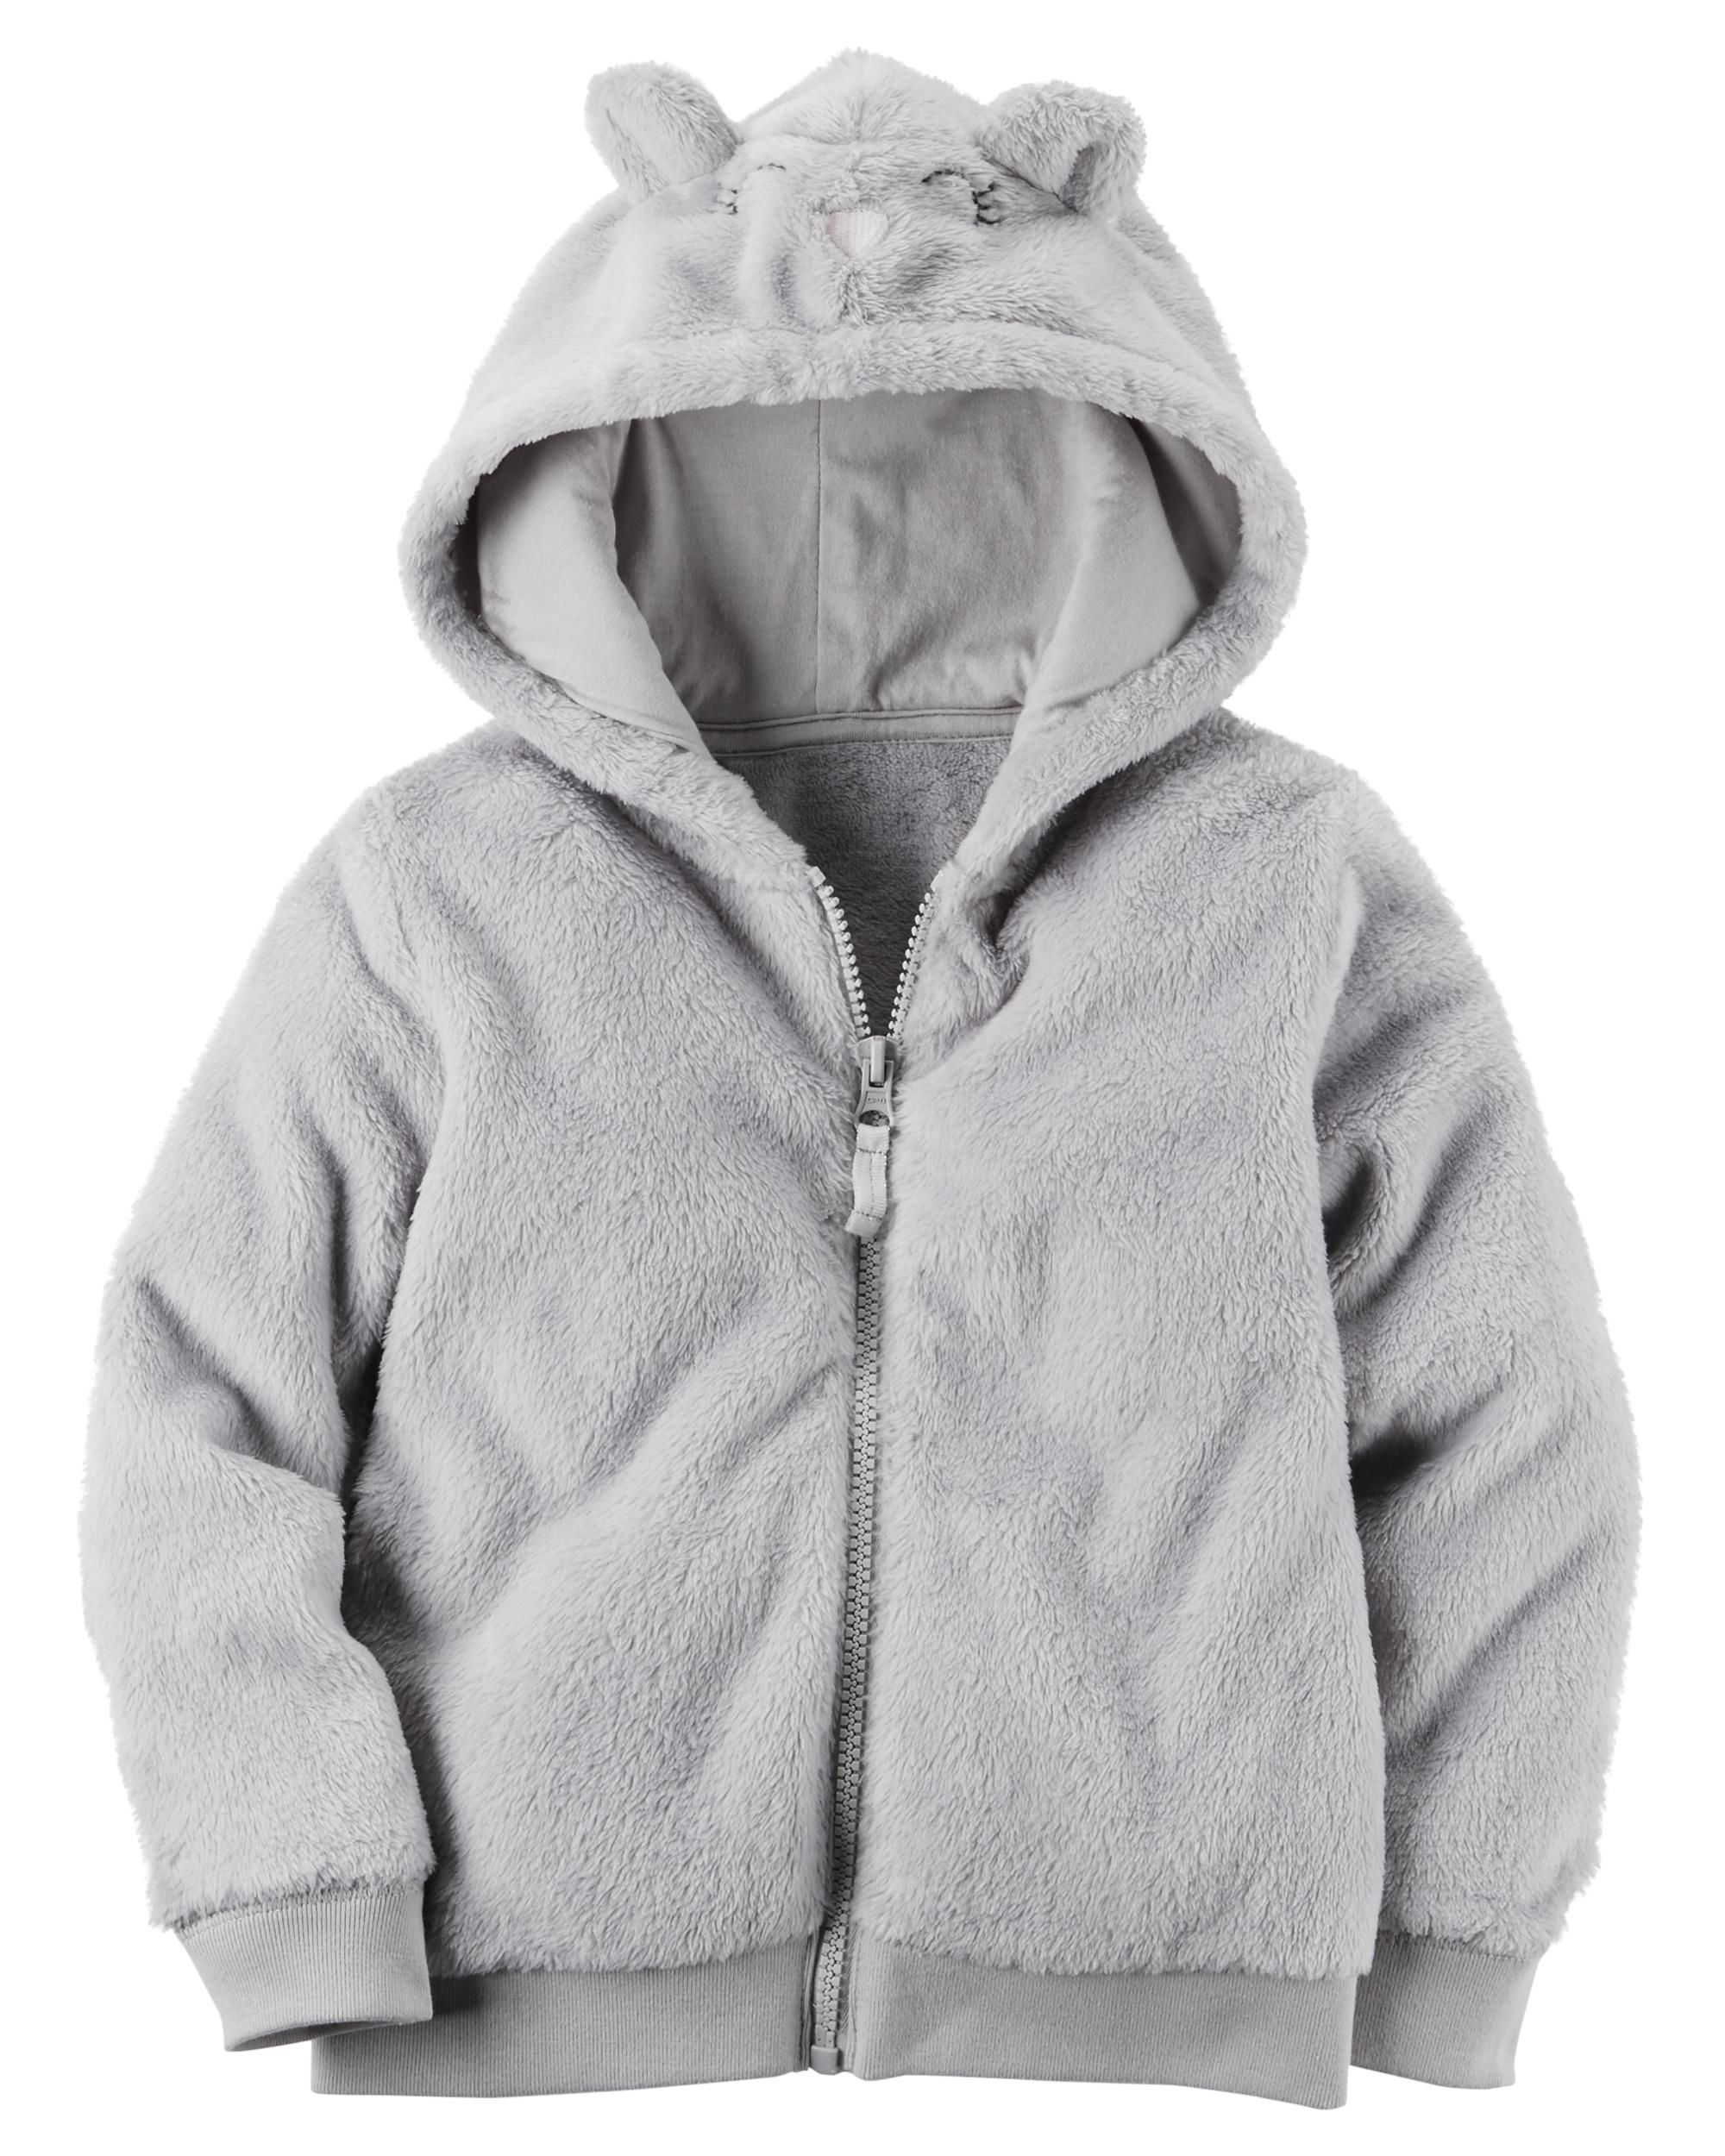 Carter's Baby Girl's Fuzzy Mouse Hoodie 12 Months